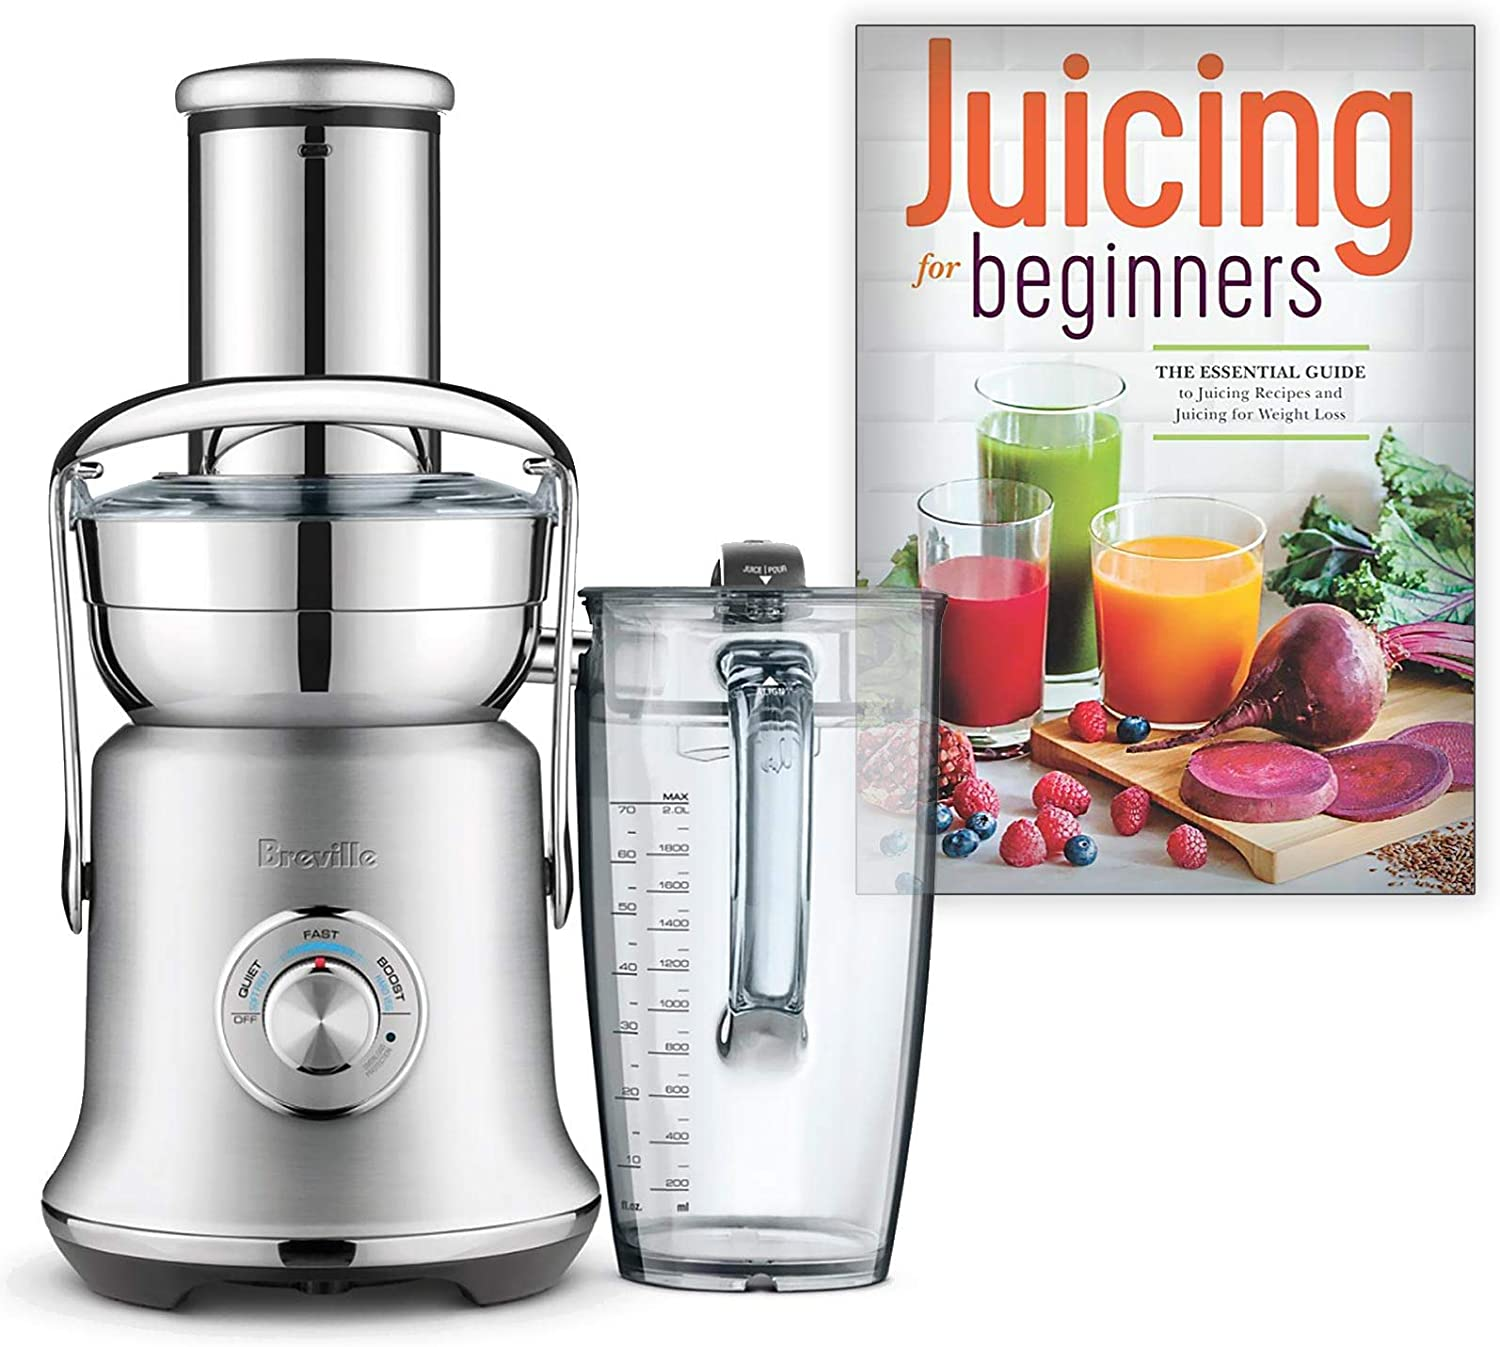 Breville BJE830BSS1BUS1 Juice Founatin Cold XL Centrifugal Juicer Bundle with Juicing for Beginners: The Essential Guide to Juicing Recipes and Juicing for Weight Loss - Brushed Stainless Steel